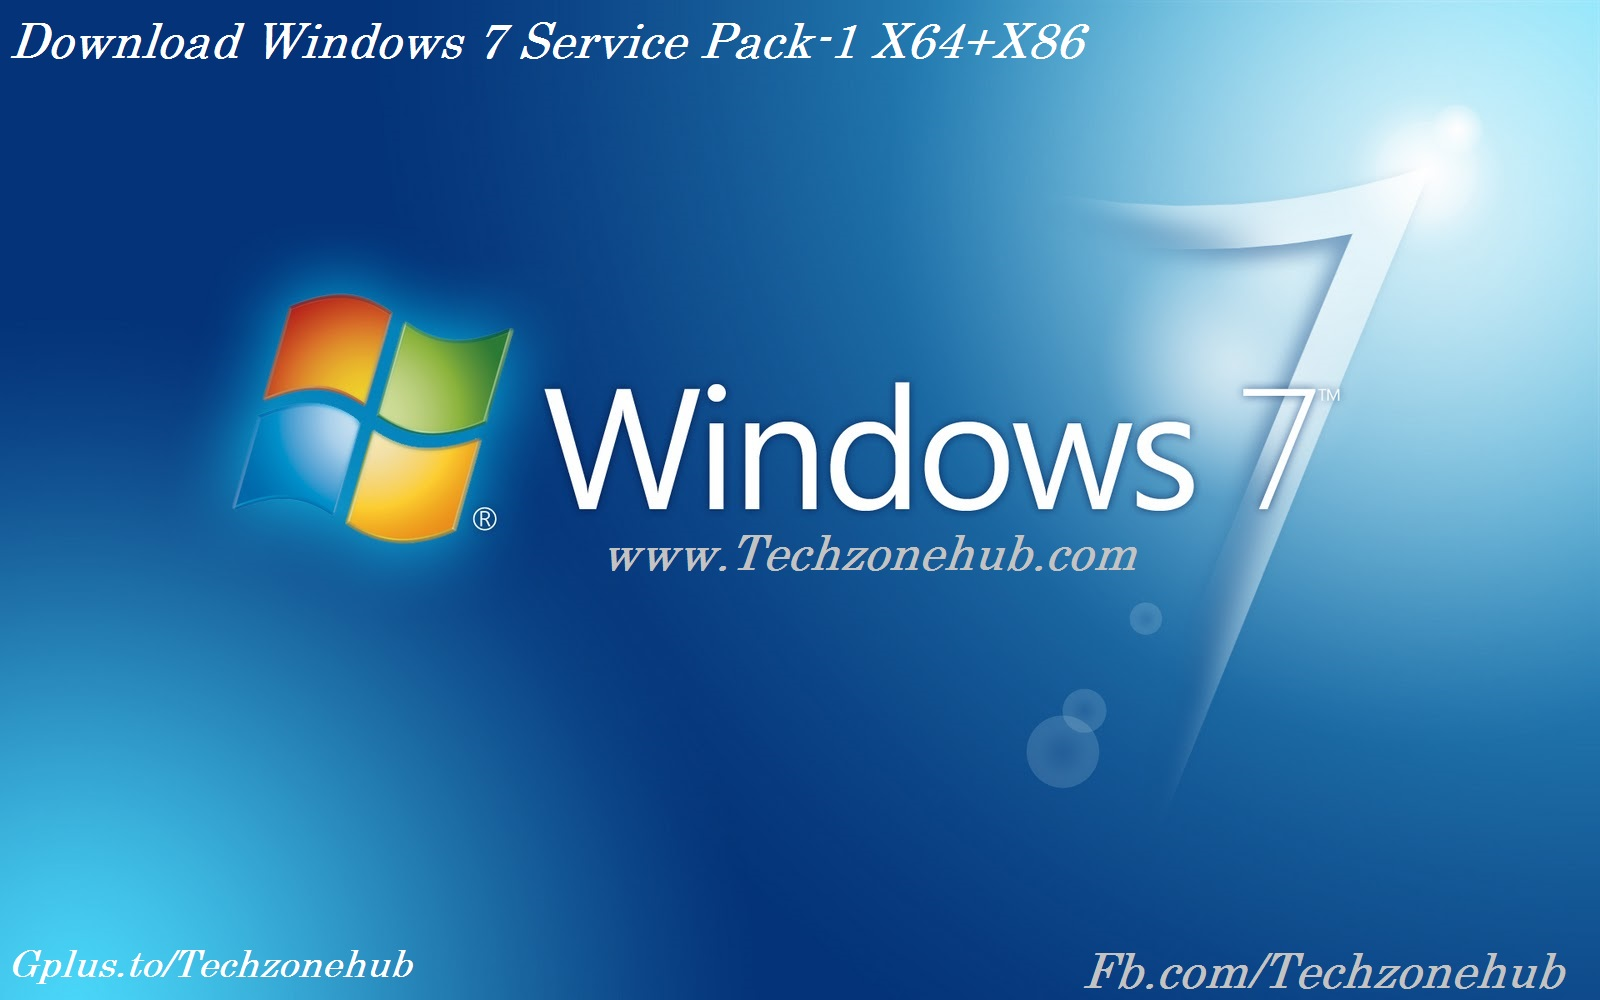 Download windows 7 ultimate 64 bit final msdn by dismedicma issuu.